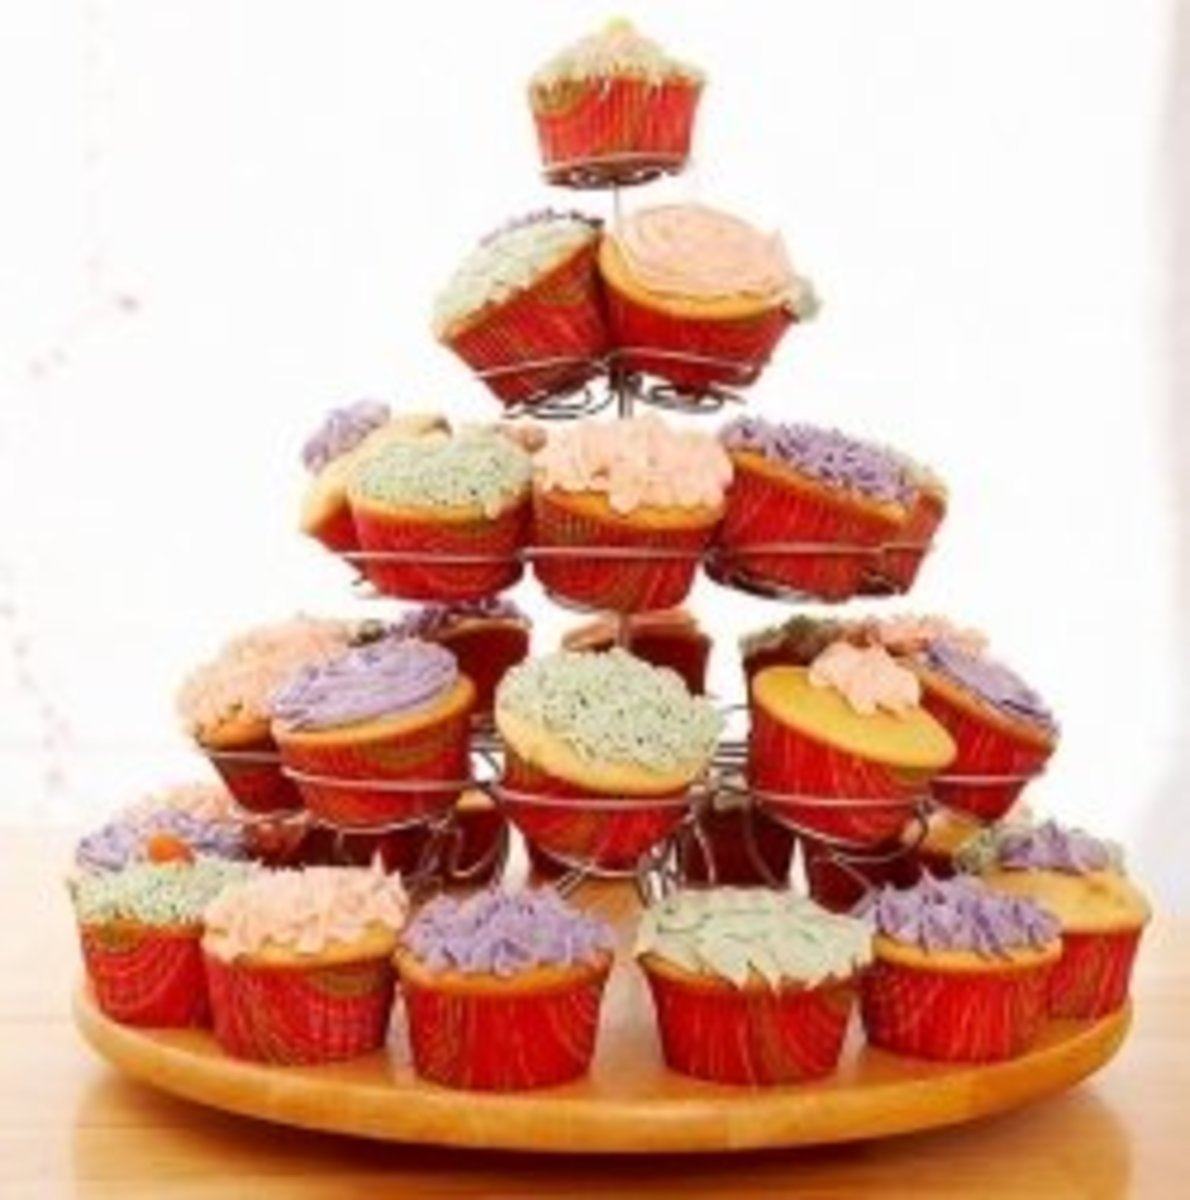 How to Display Cupcakes: Cute Ways to Present and Serve your Cupcakes!